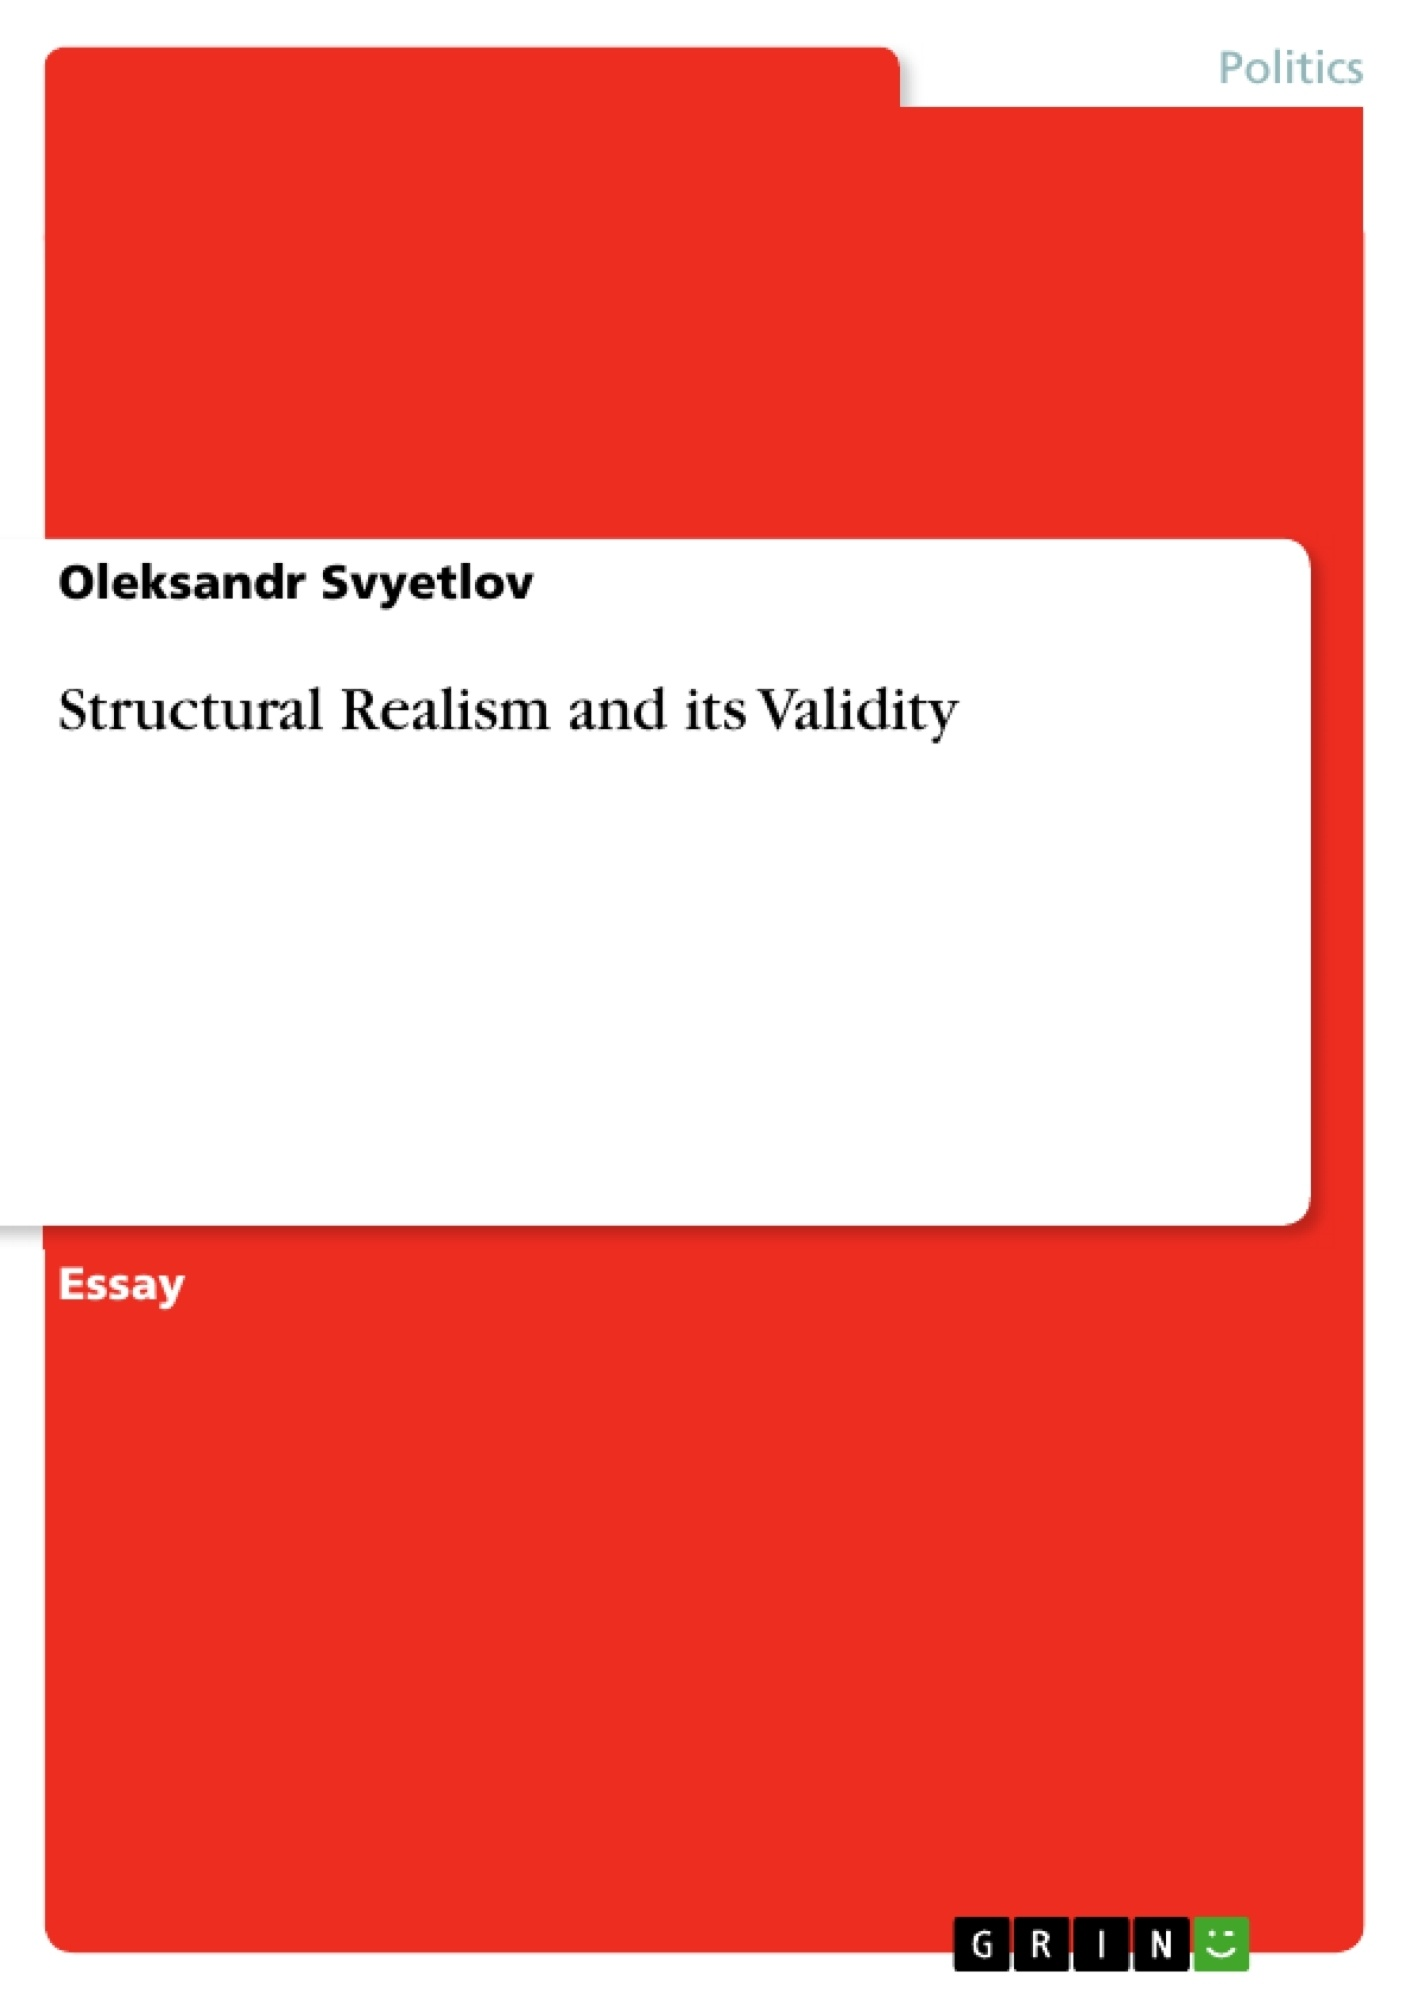 Title: Structural Realism and its Validity